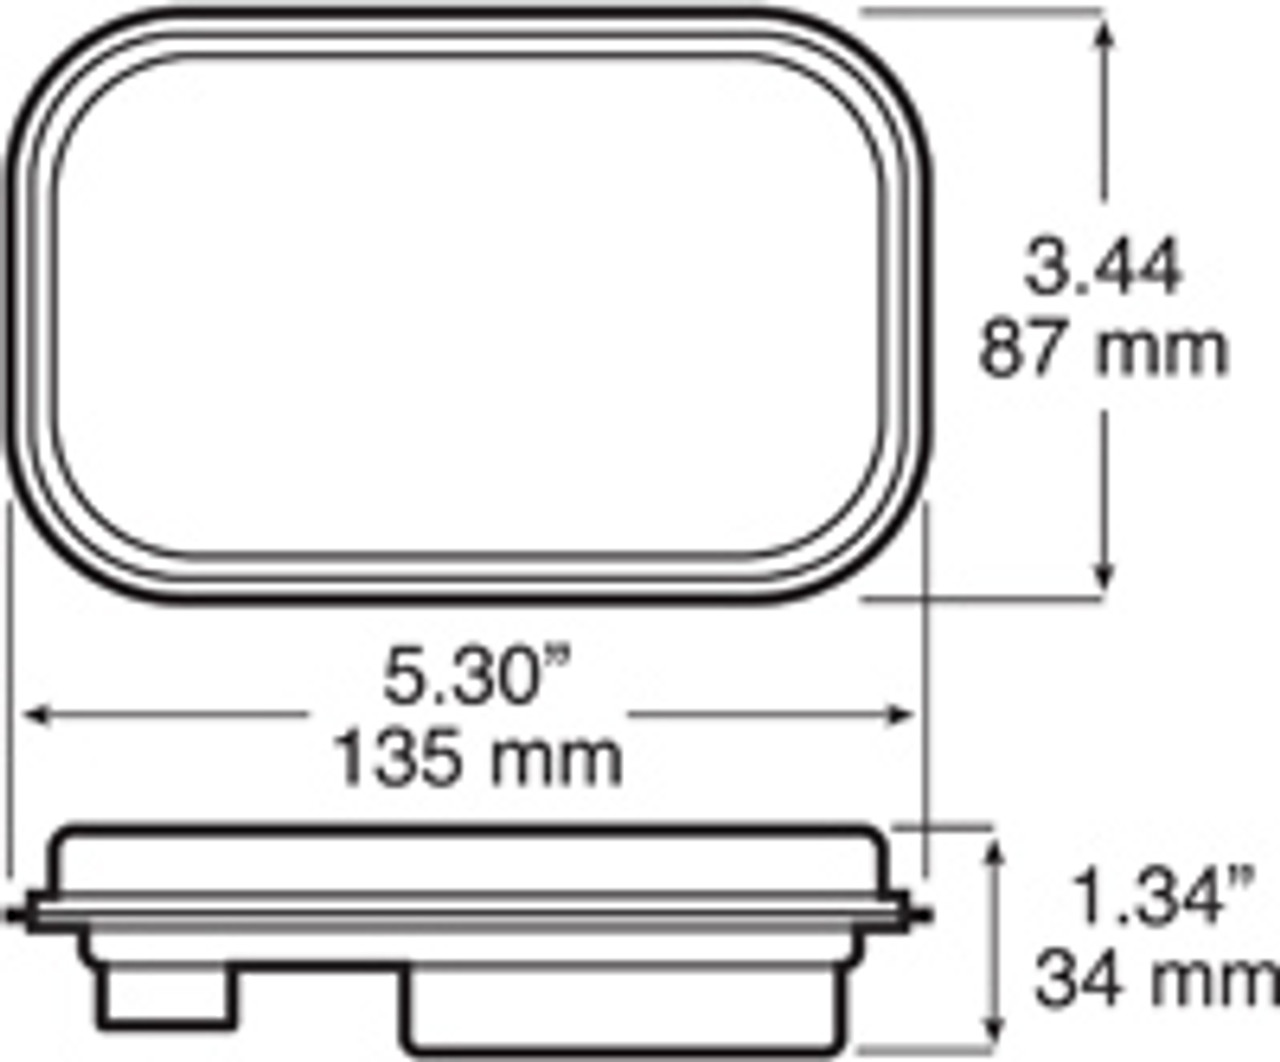 Line Drawing for 850 Series